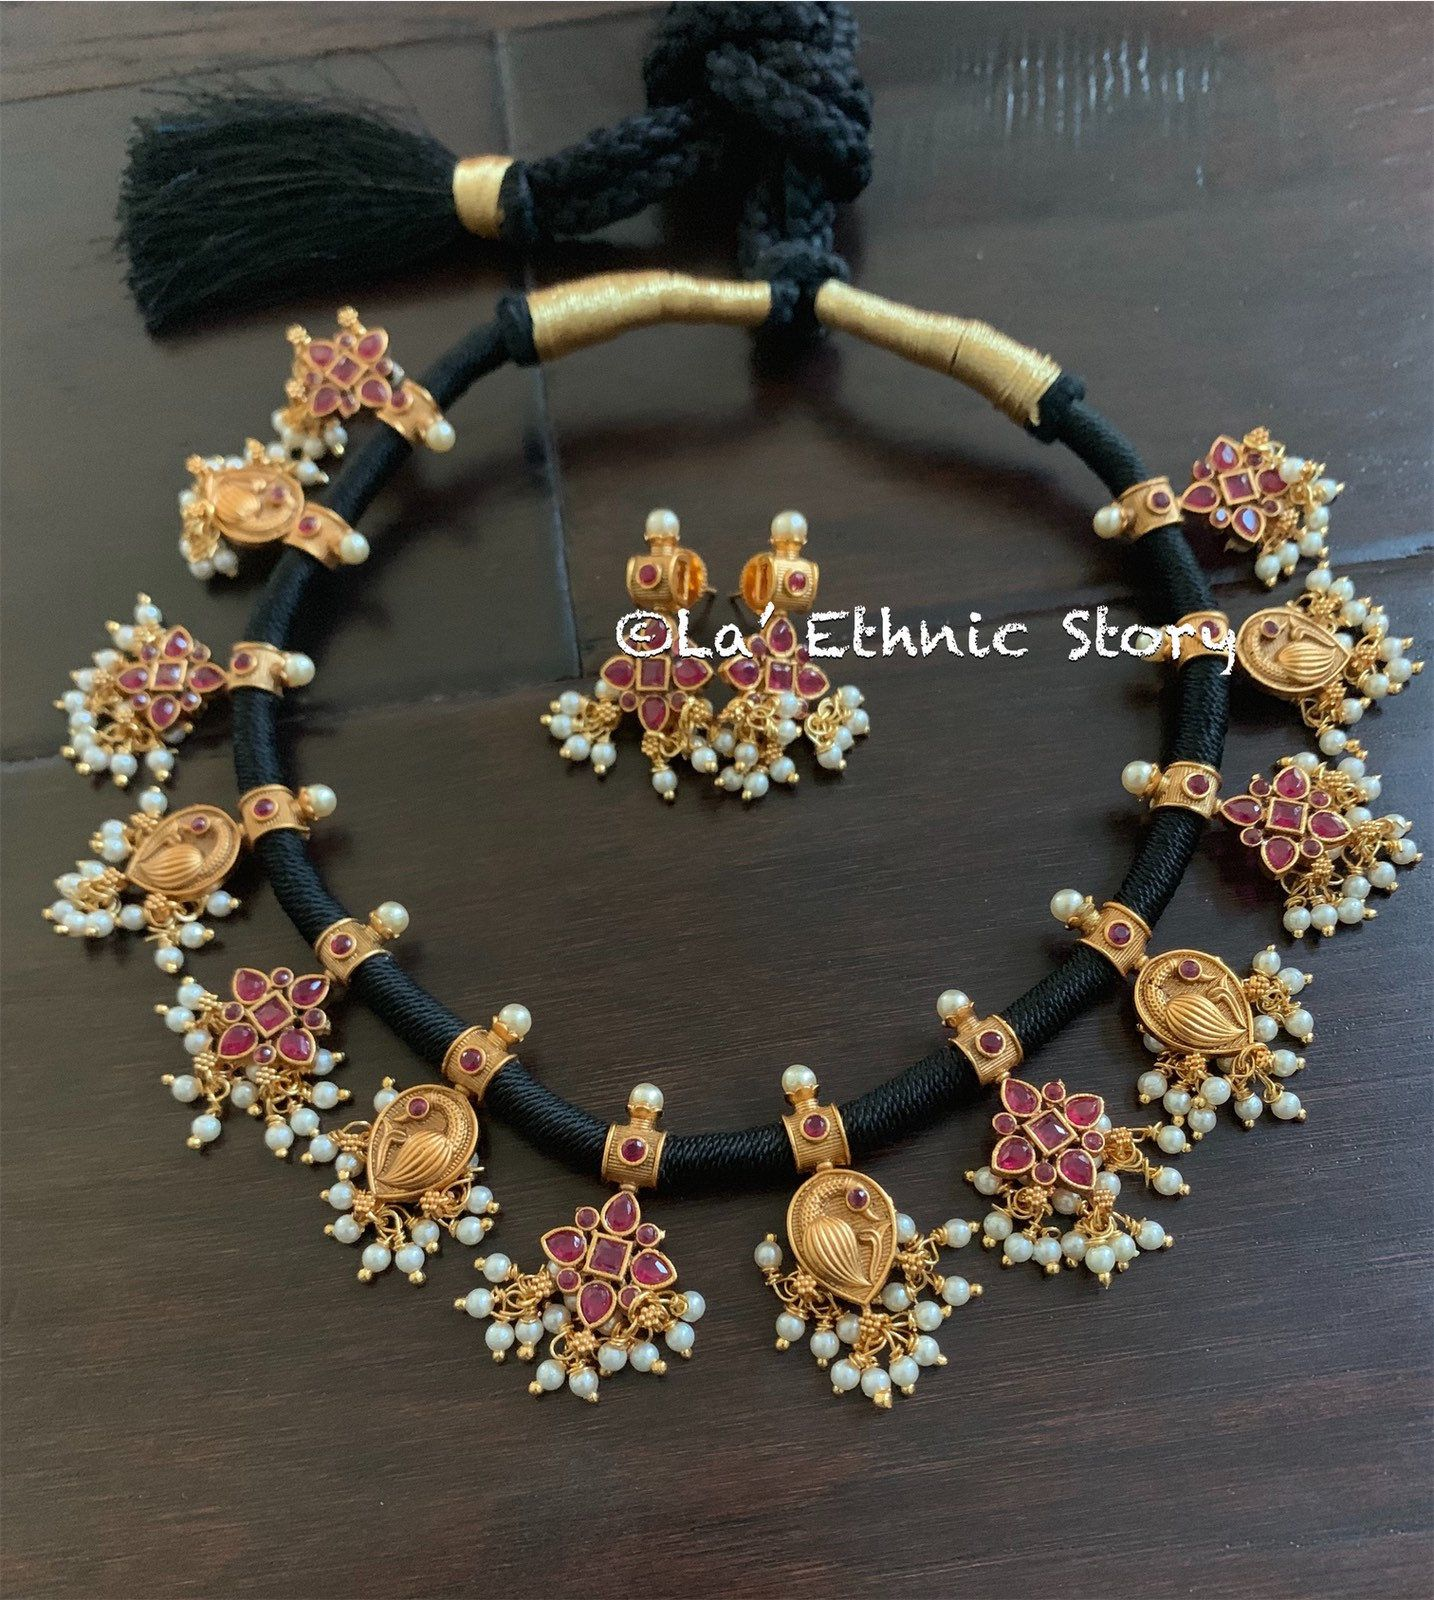 Traditional Indian Jewelry Thread Jewelry Necklaceset Etsy Gold Earrings Designs Indian Jewelry Bangles Jewelry Designs